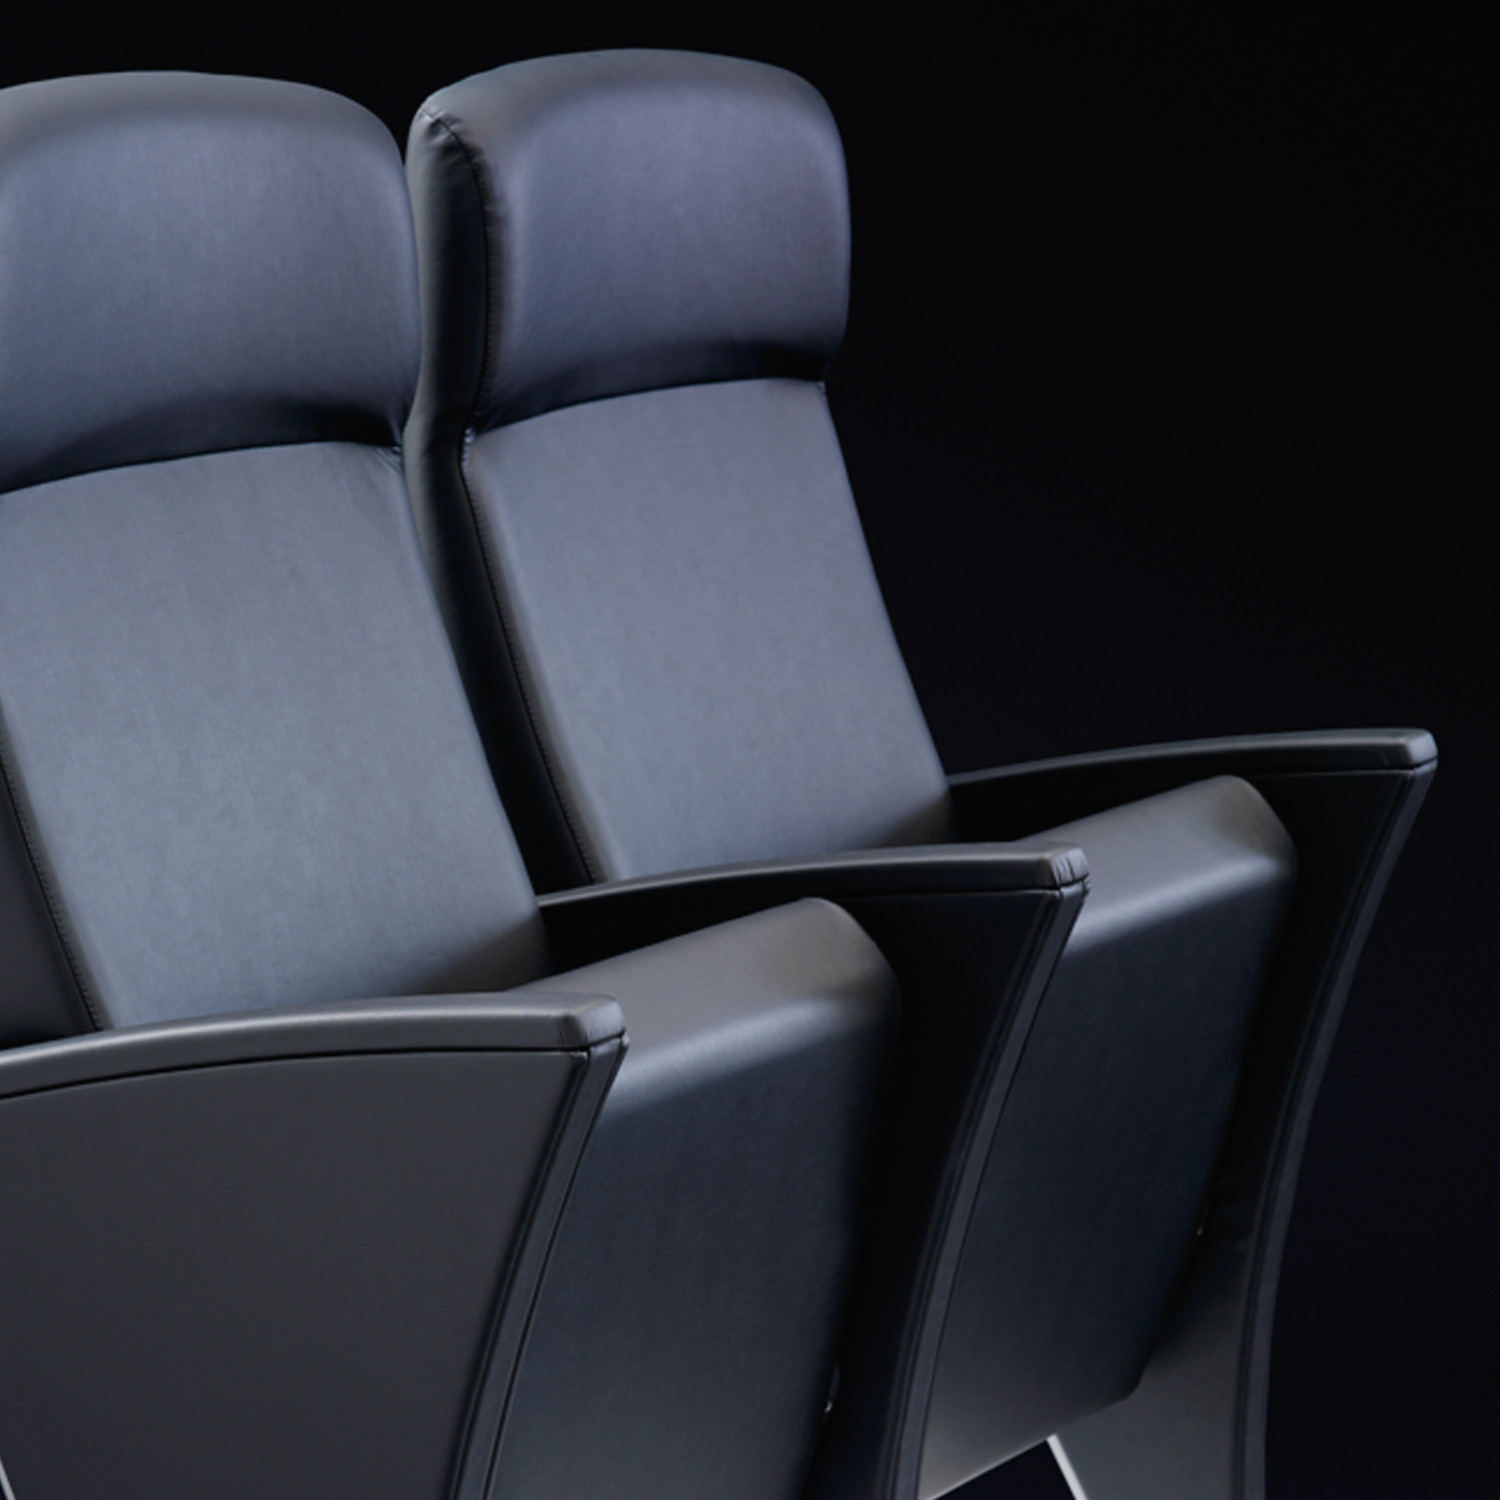 Eidos Auditorium Chairs upholstered in leather